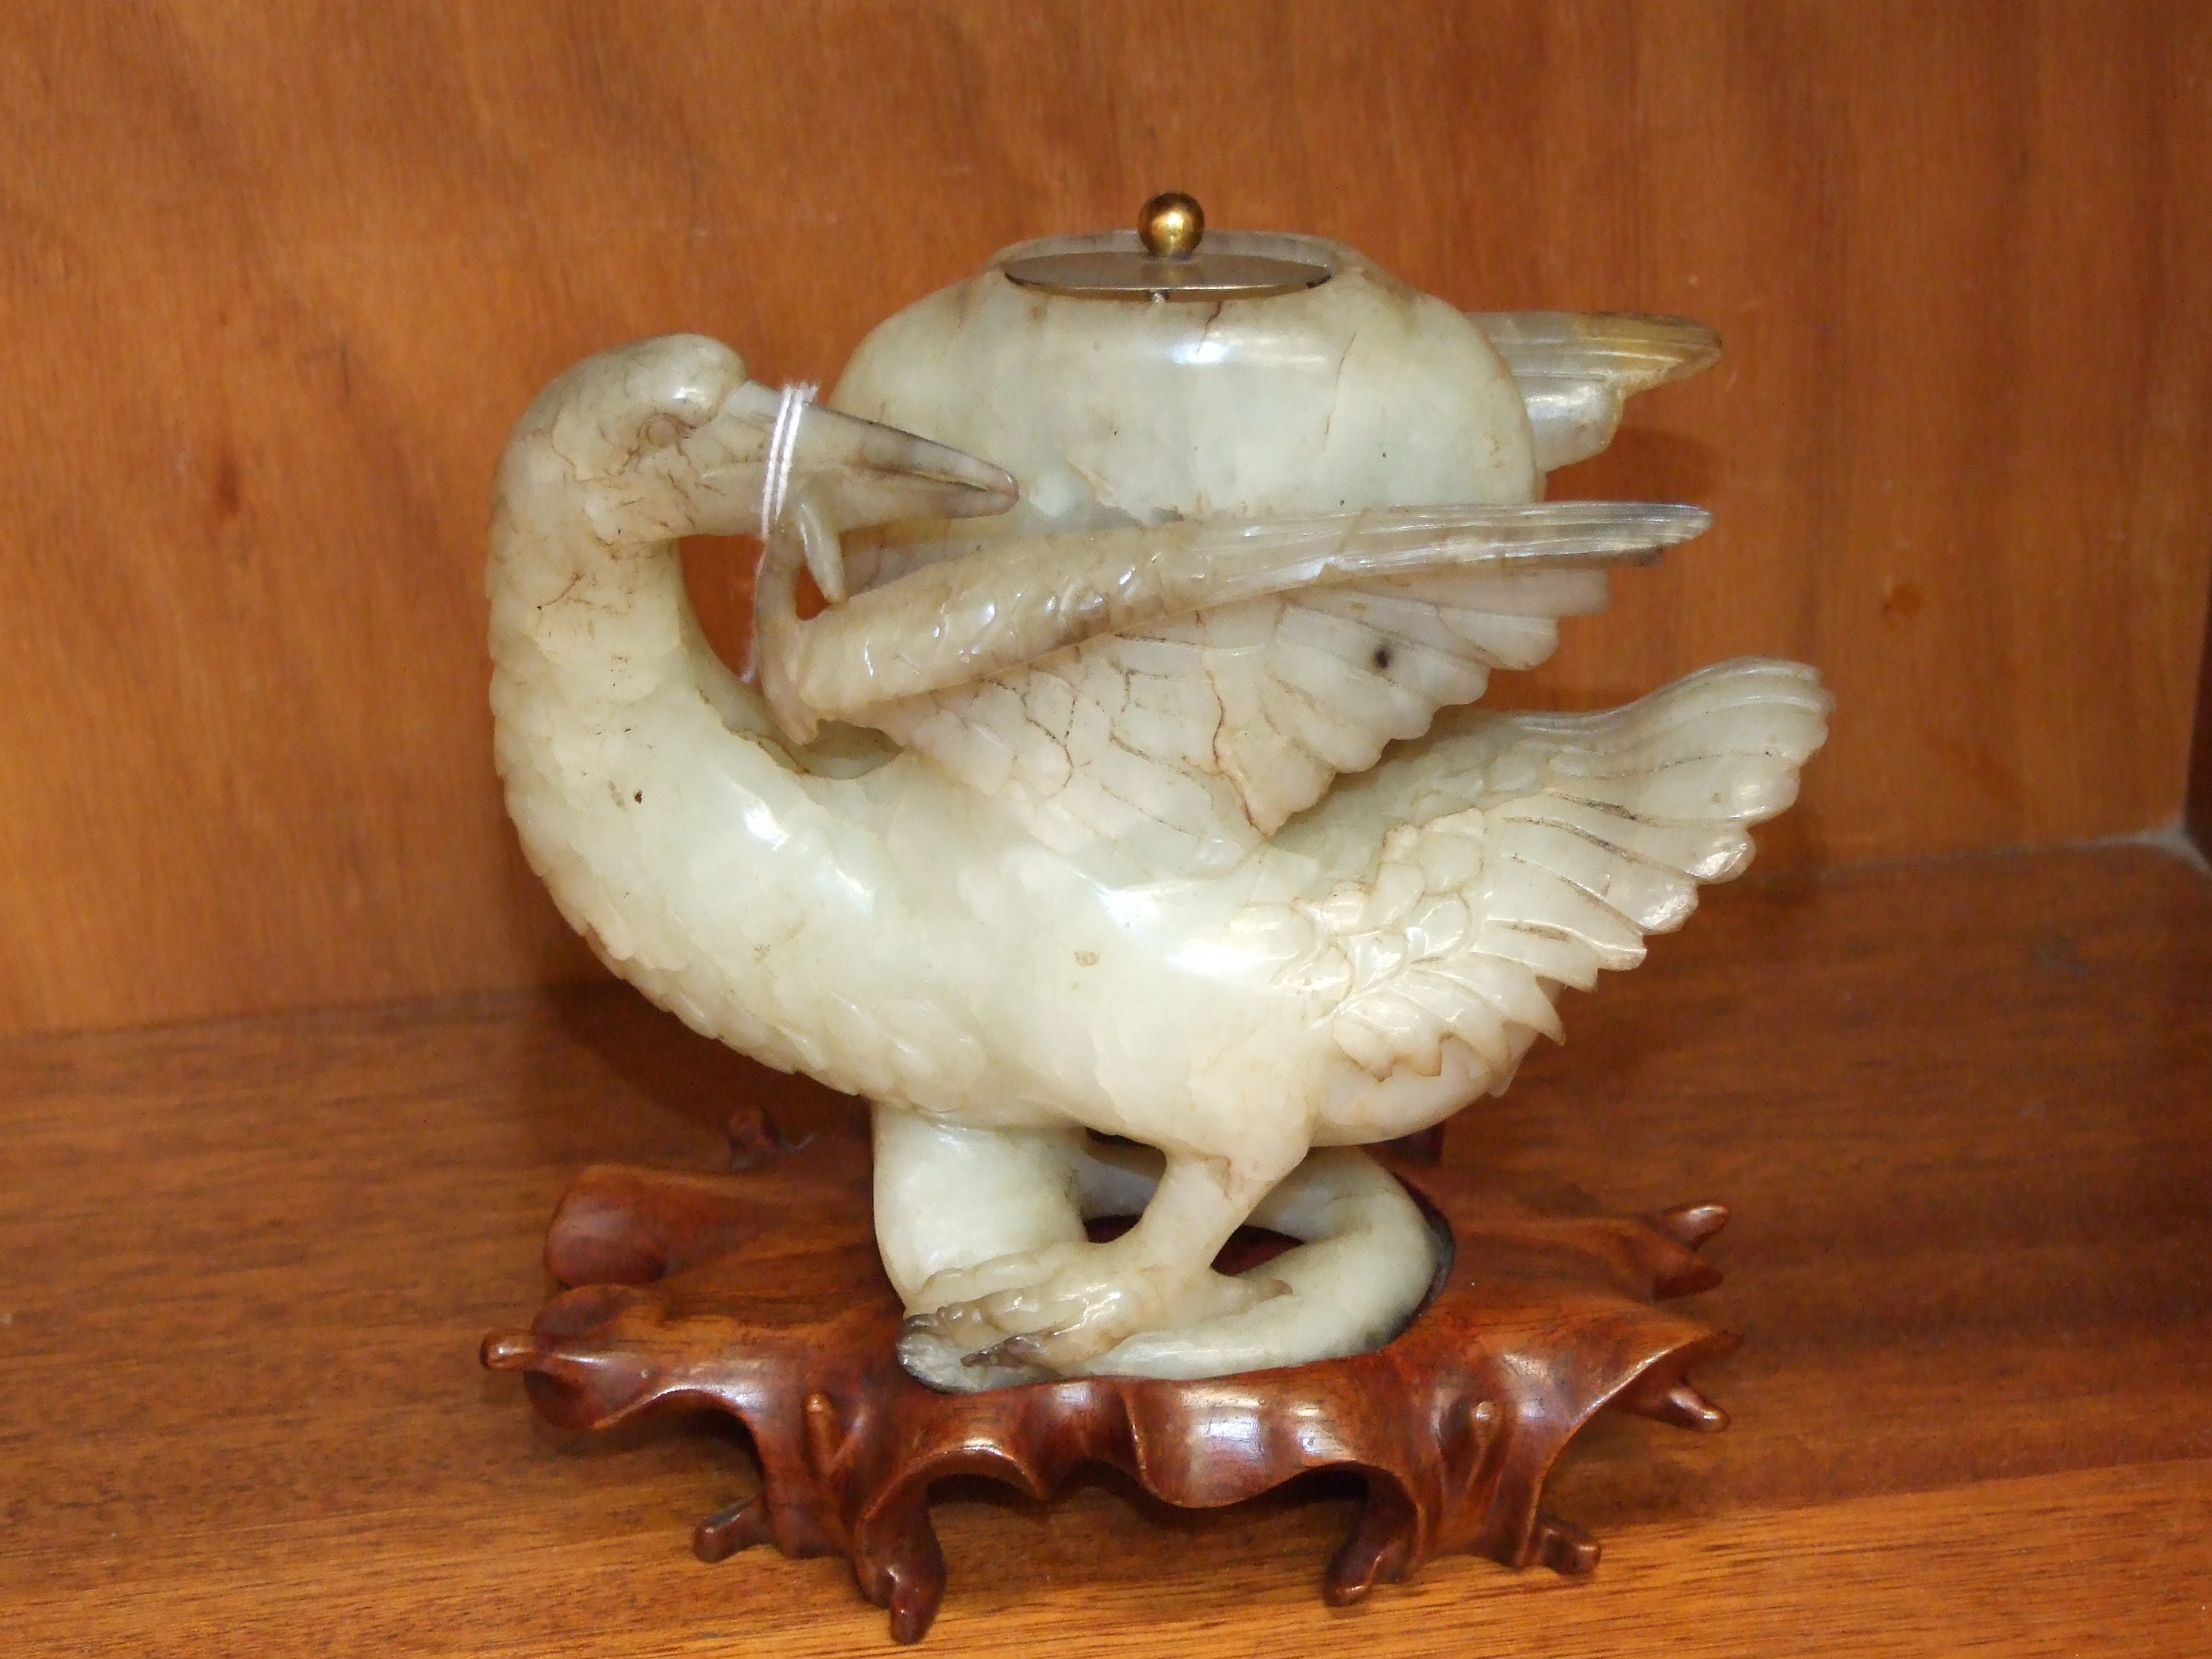 Lot 246 - A jade-type hardstone model of a bird supporting a beaten white metal lidded stone pot between its